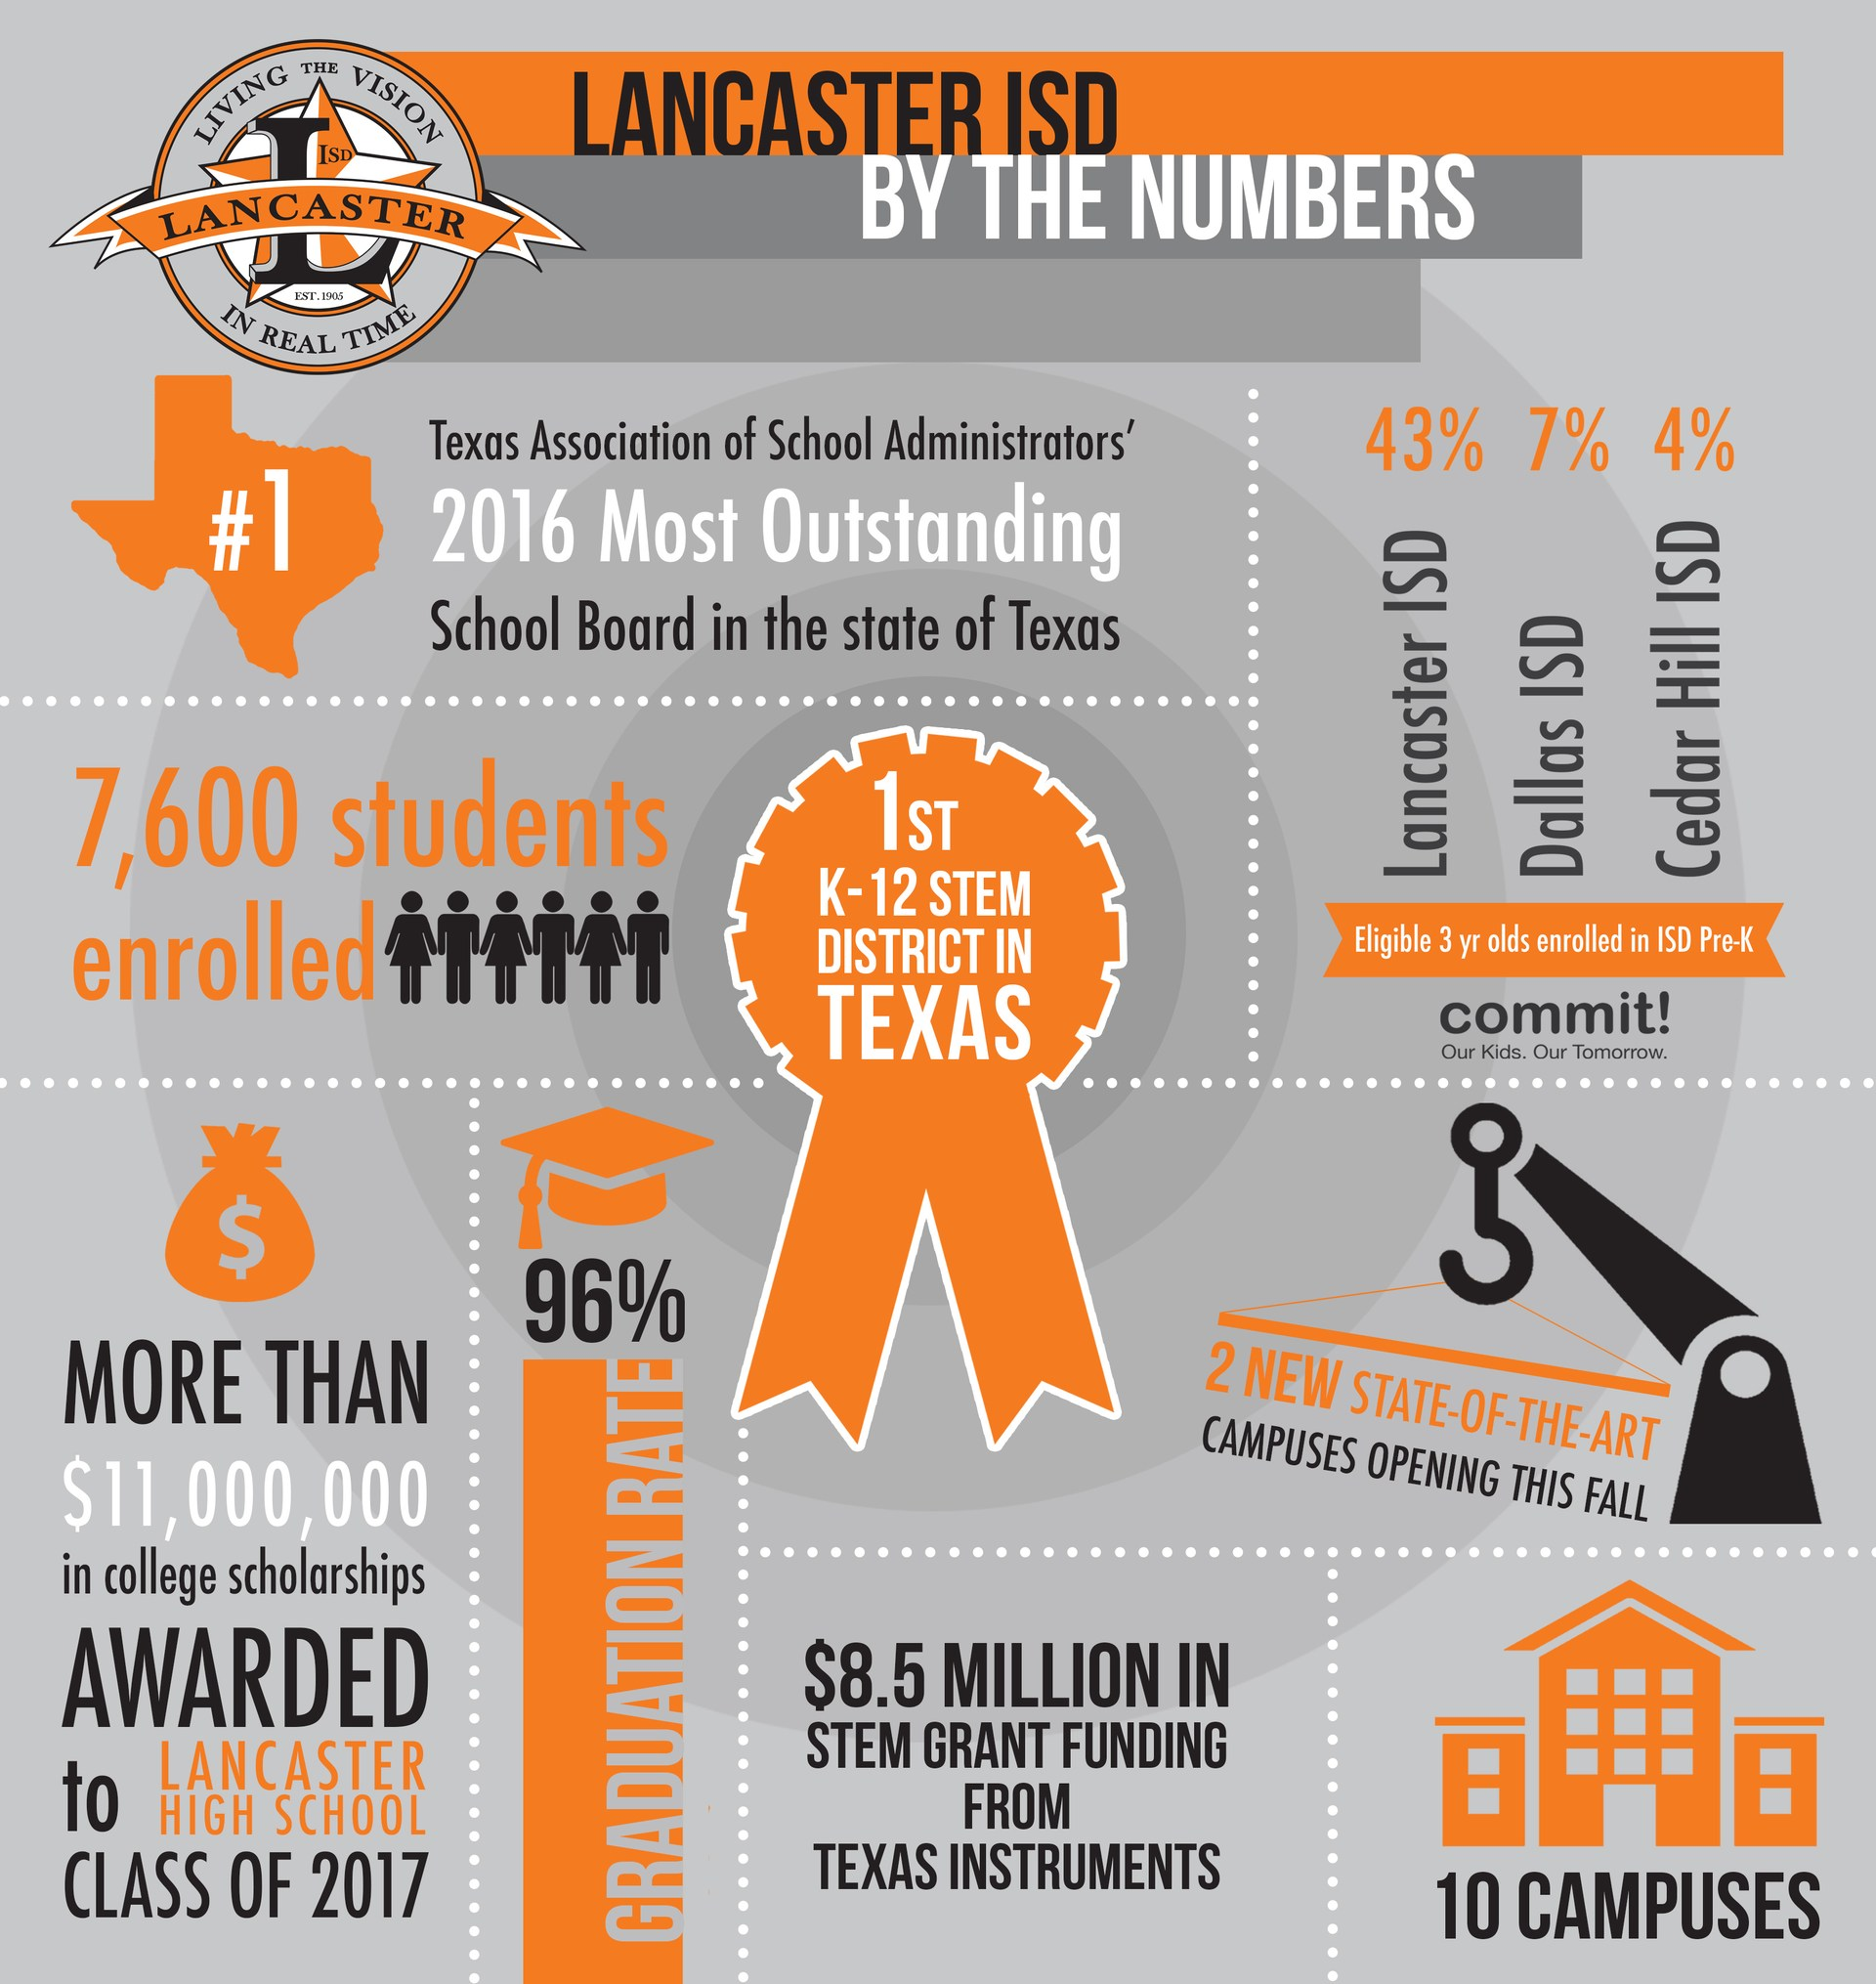 Lancaster ISD 2017 Achievements by the Numbers Infographic